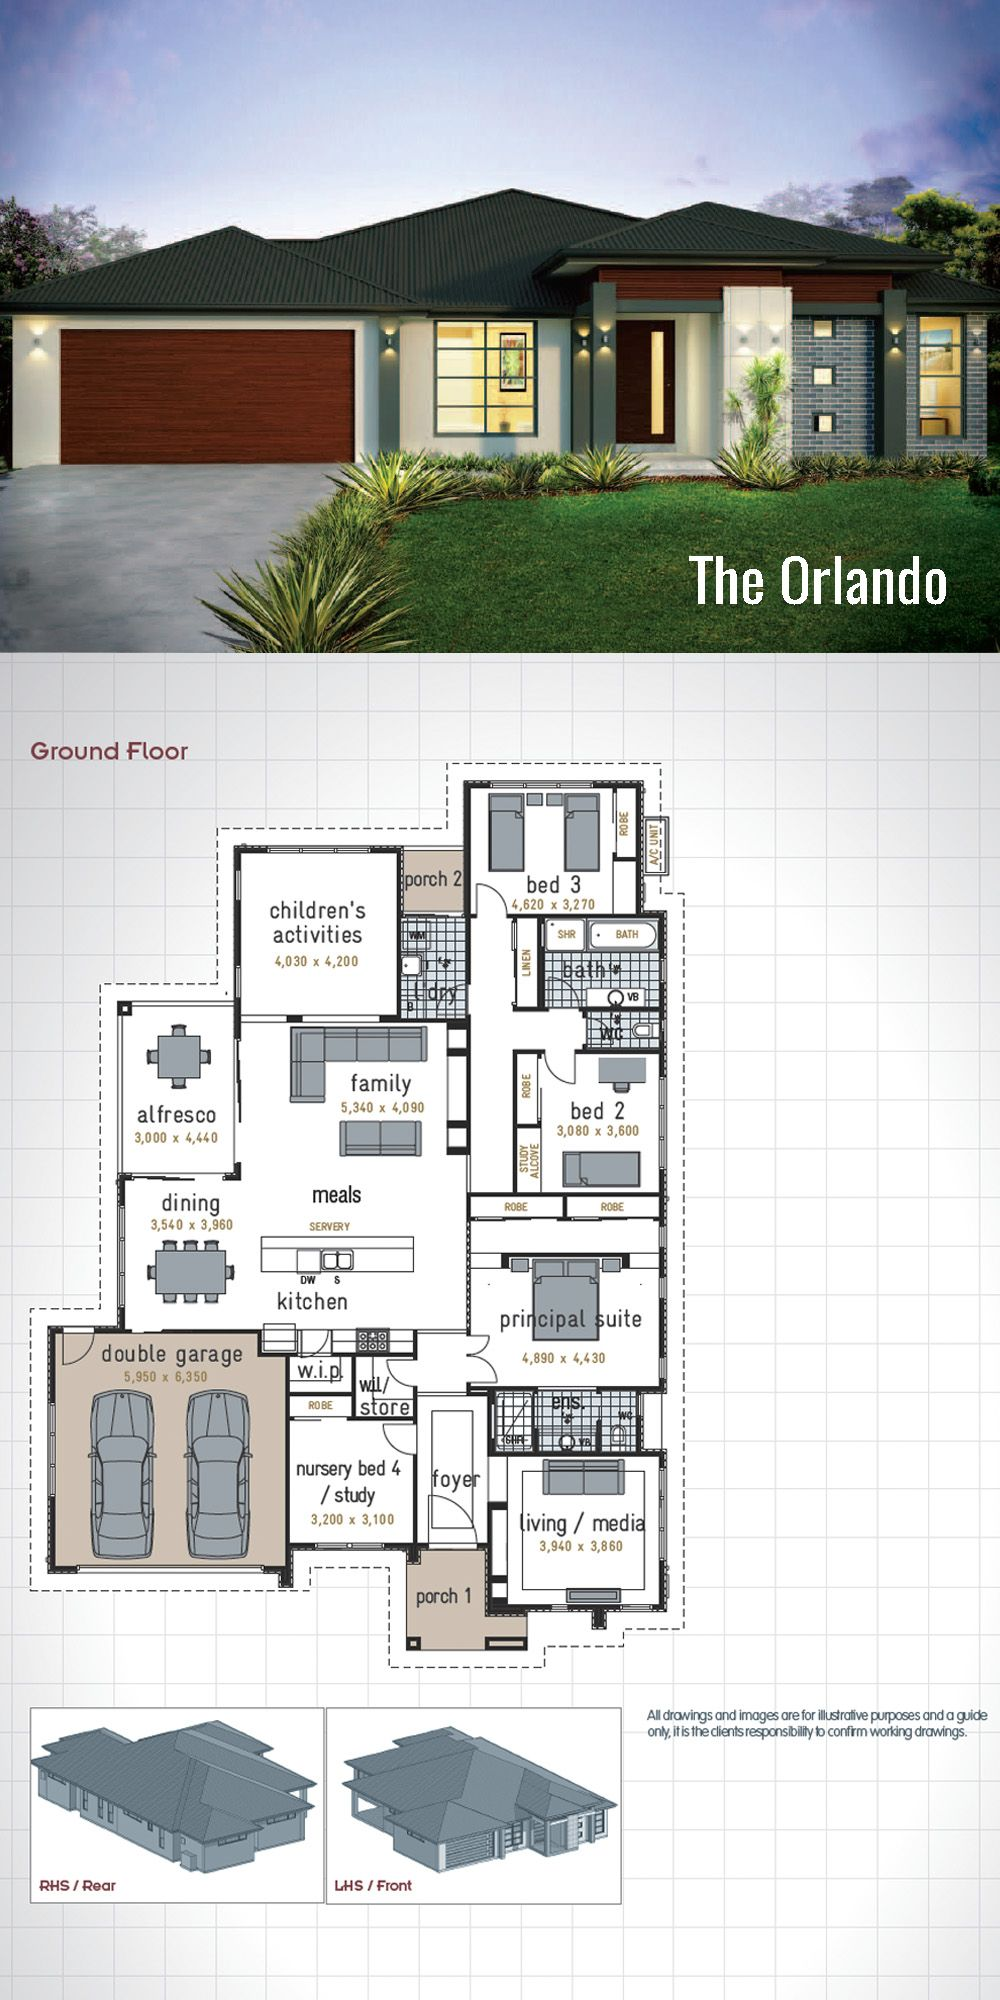 Single Storey House Design  The Orlando. A generous size of 278 Sq.m. 15.95 x 22.43m. Designed